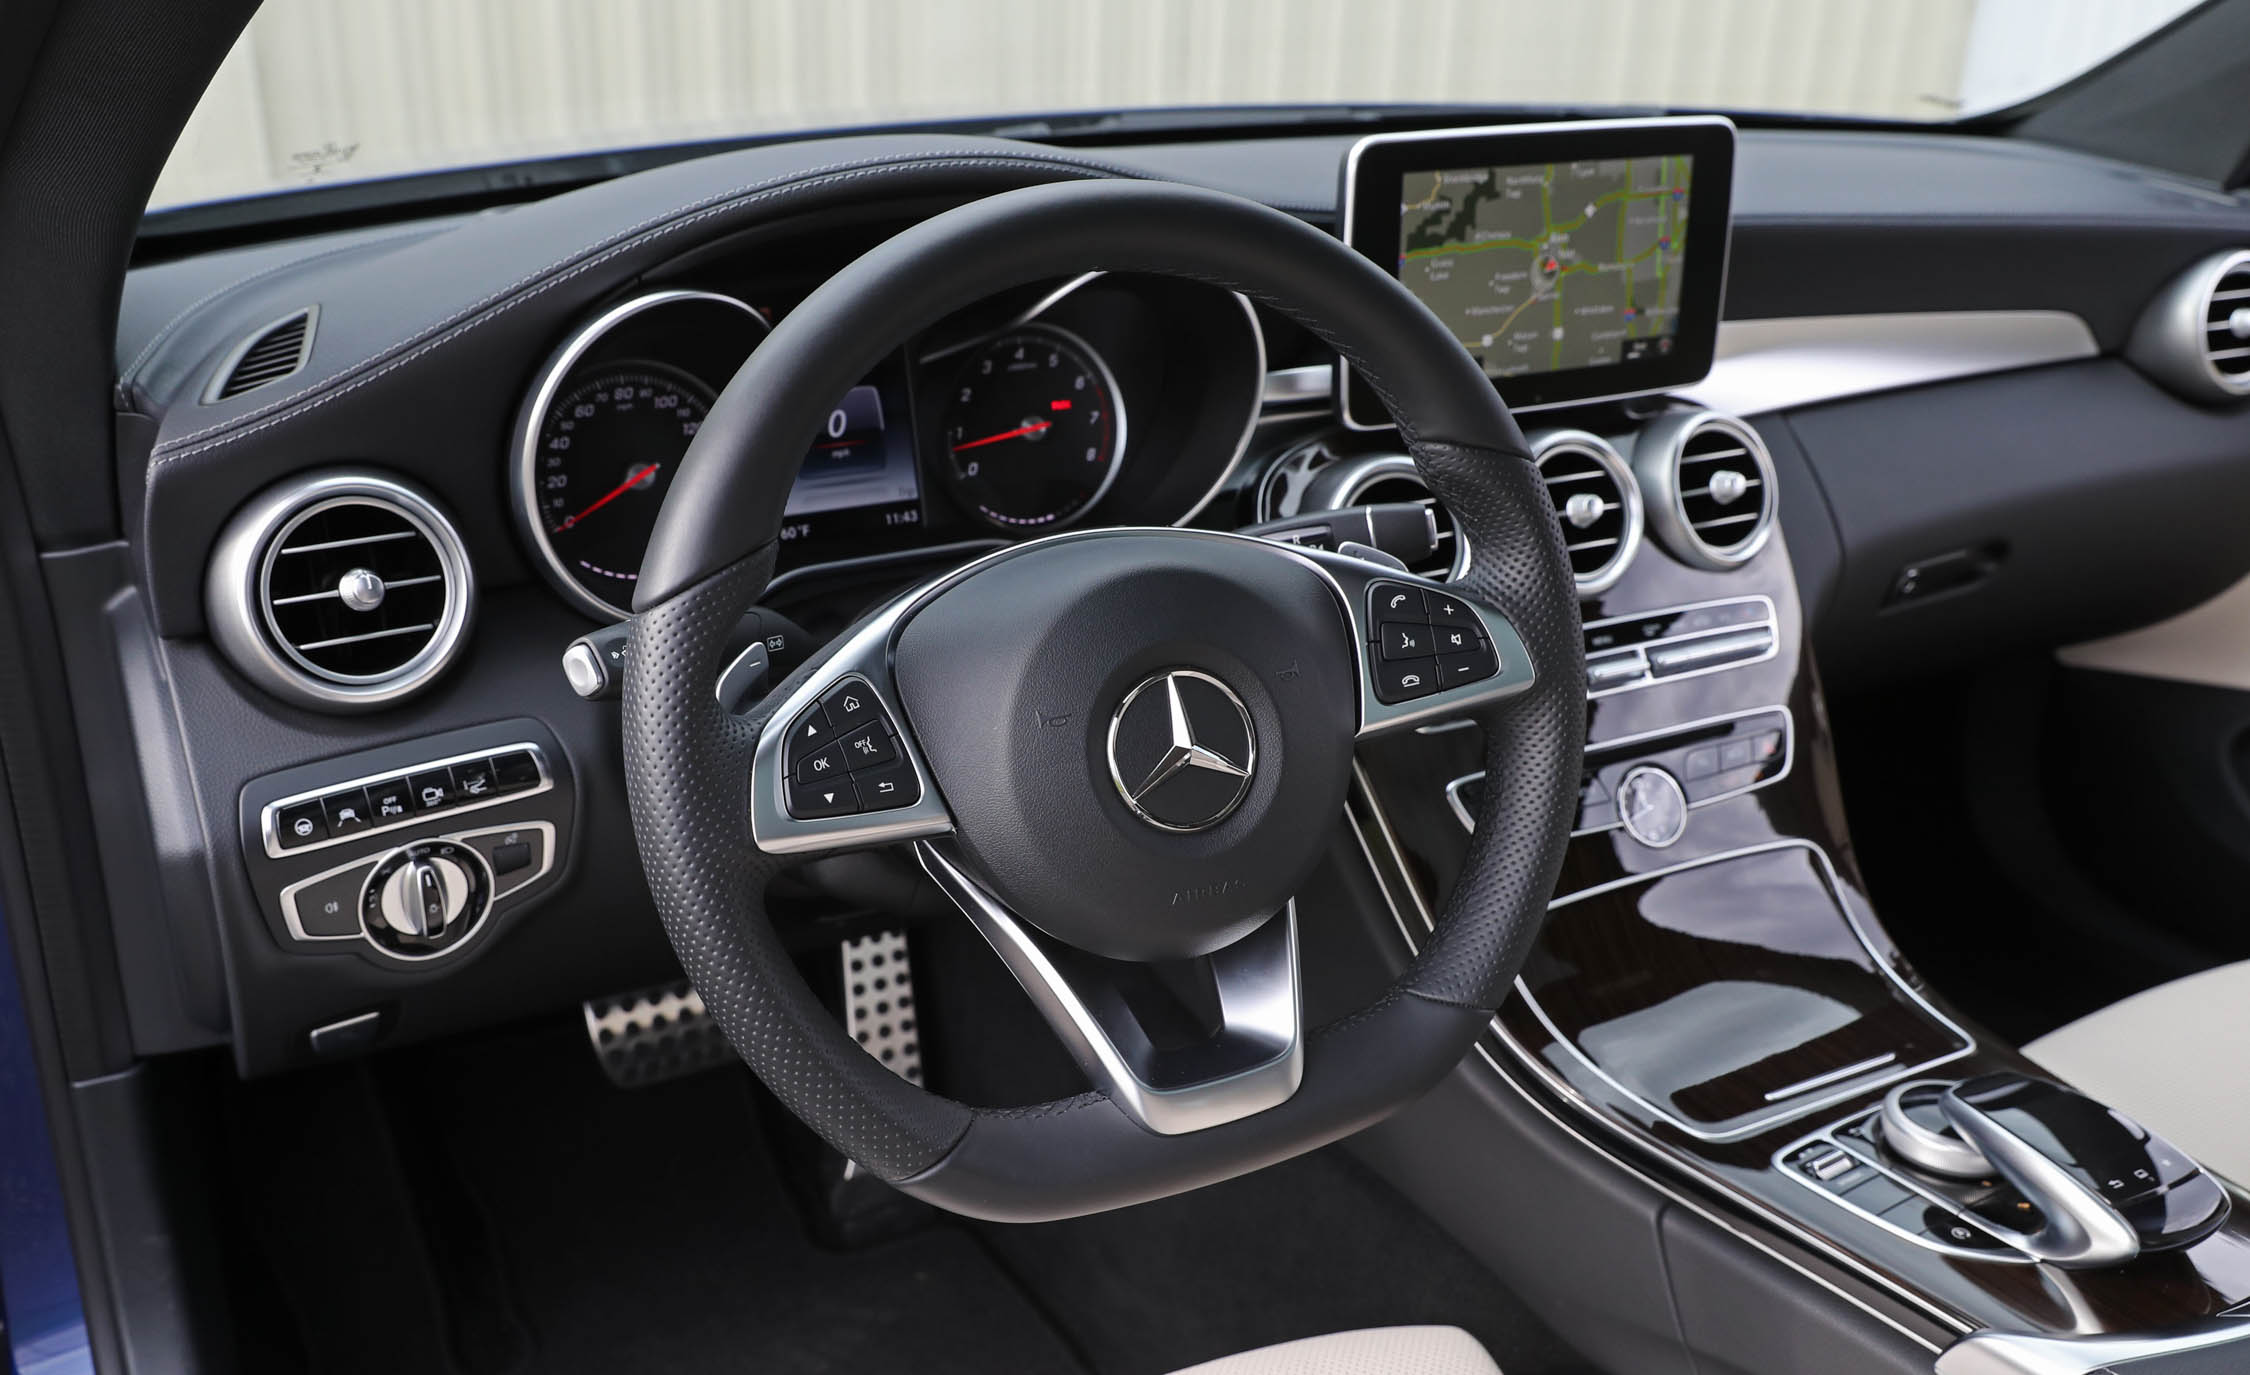 2017 Mercedes Benz C300 4MATIC Coupe Interior Steering Wheel (Photo 31 of 44)